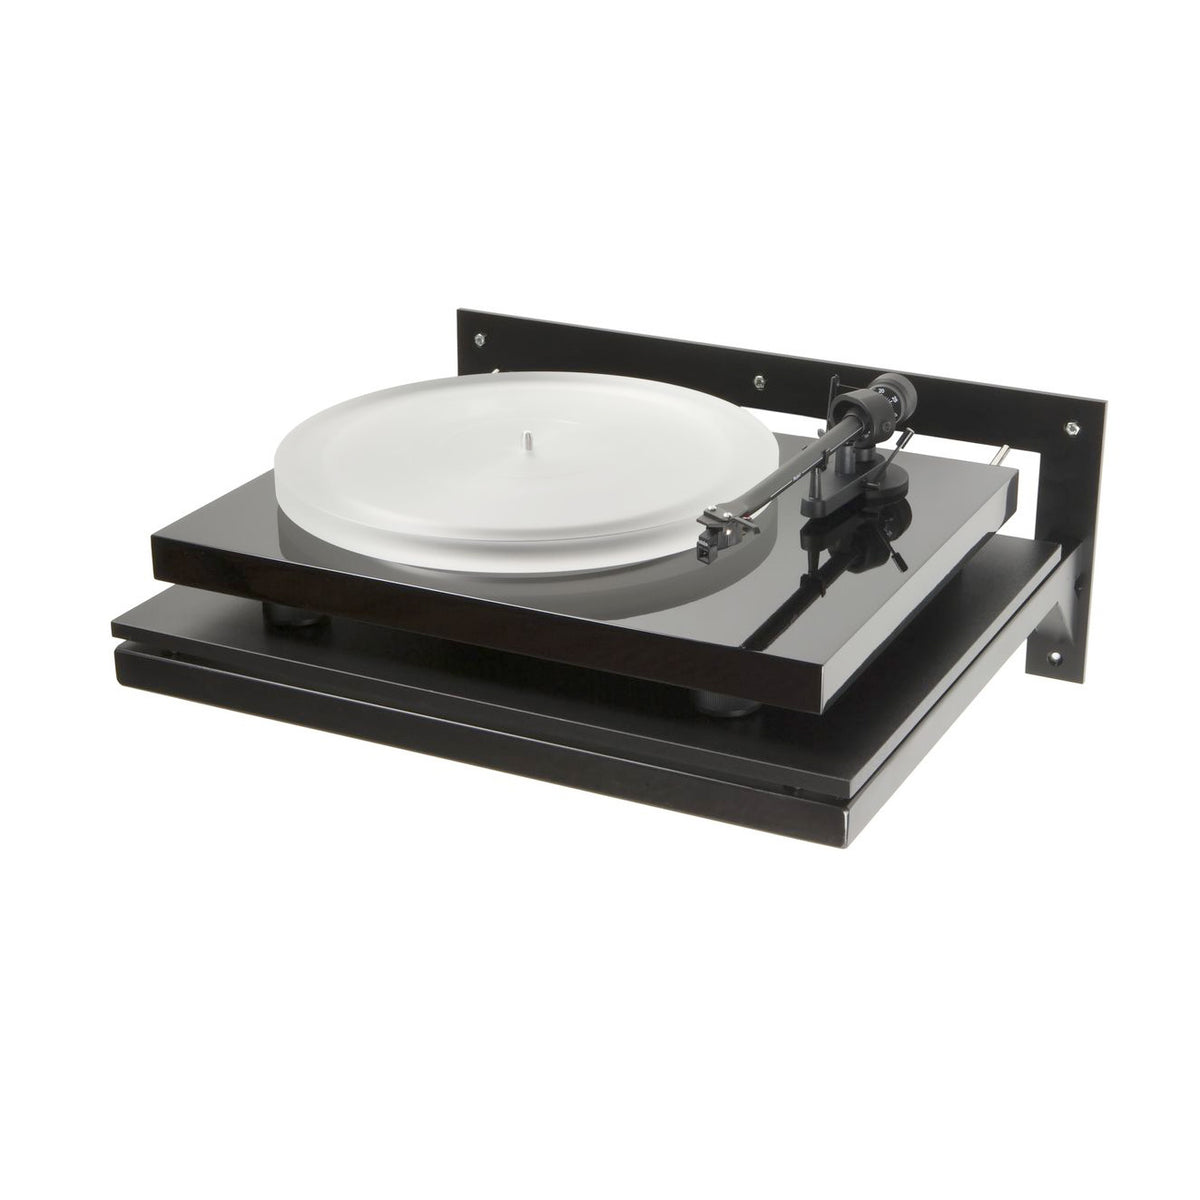 Pro-Ject: Wallmount It 1 Turntable Shelf with Turntable